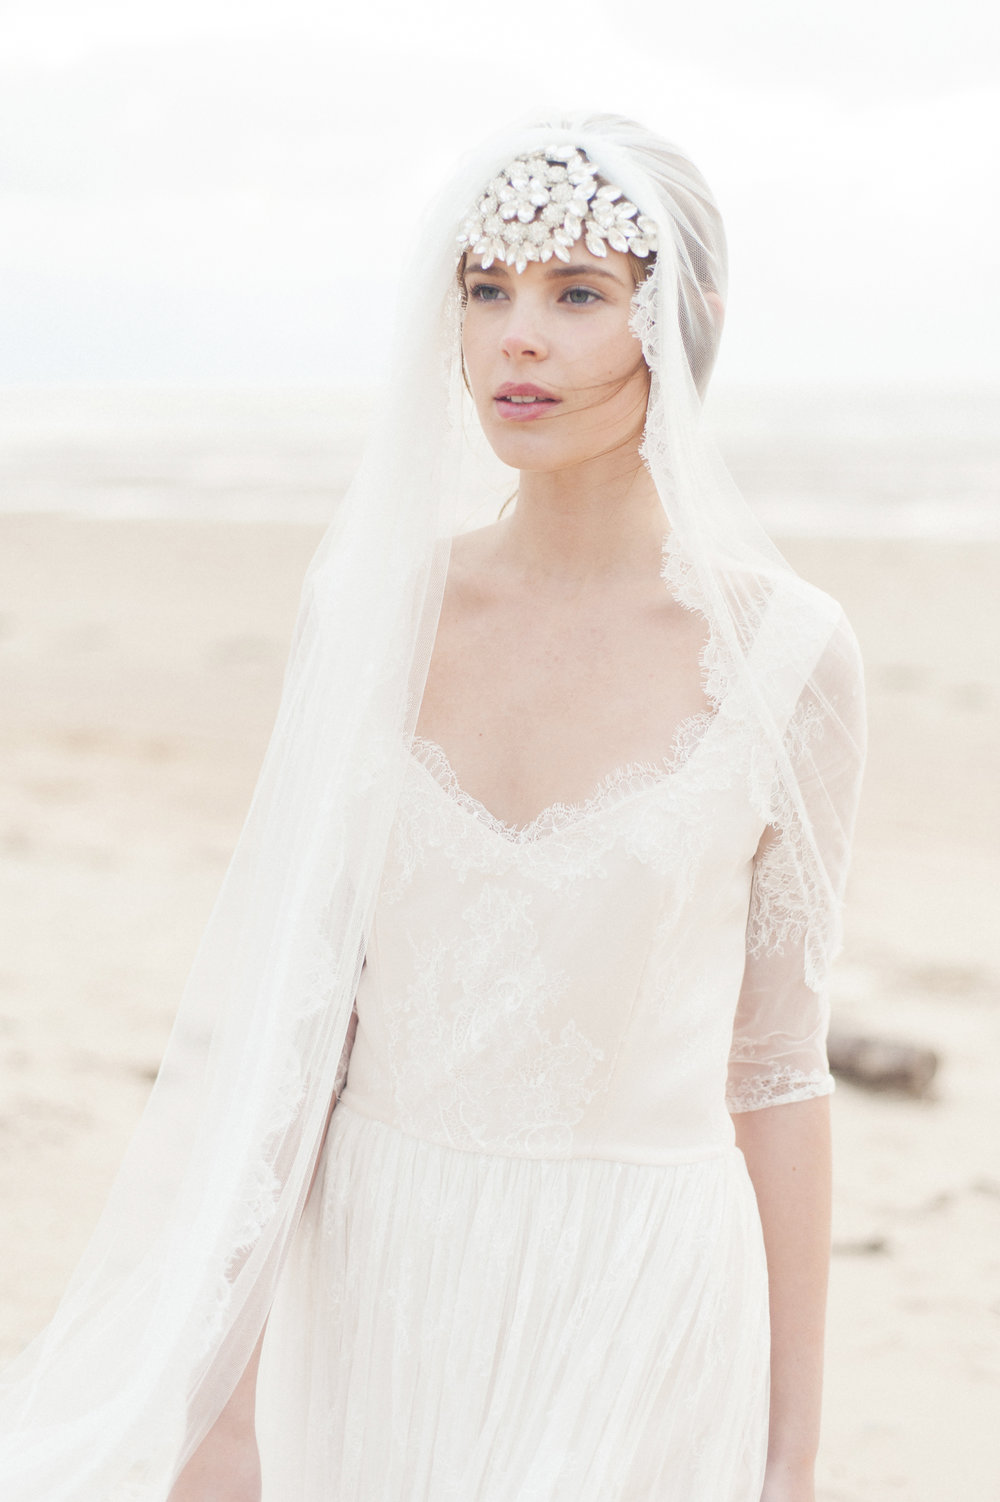 Kate-Beaumont-Wedding-Dresses-Formby-Beach-Emma-Pilkington-35.jpg